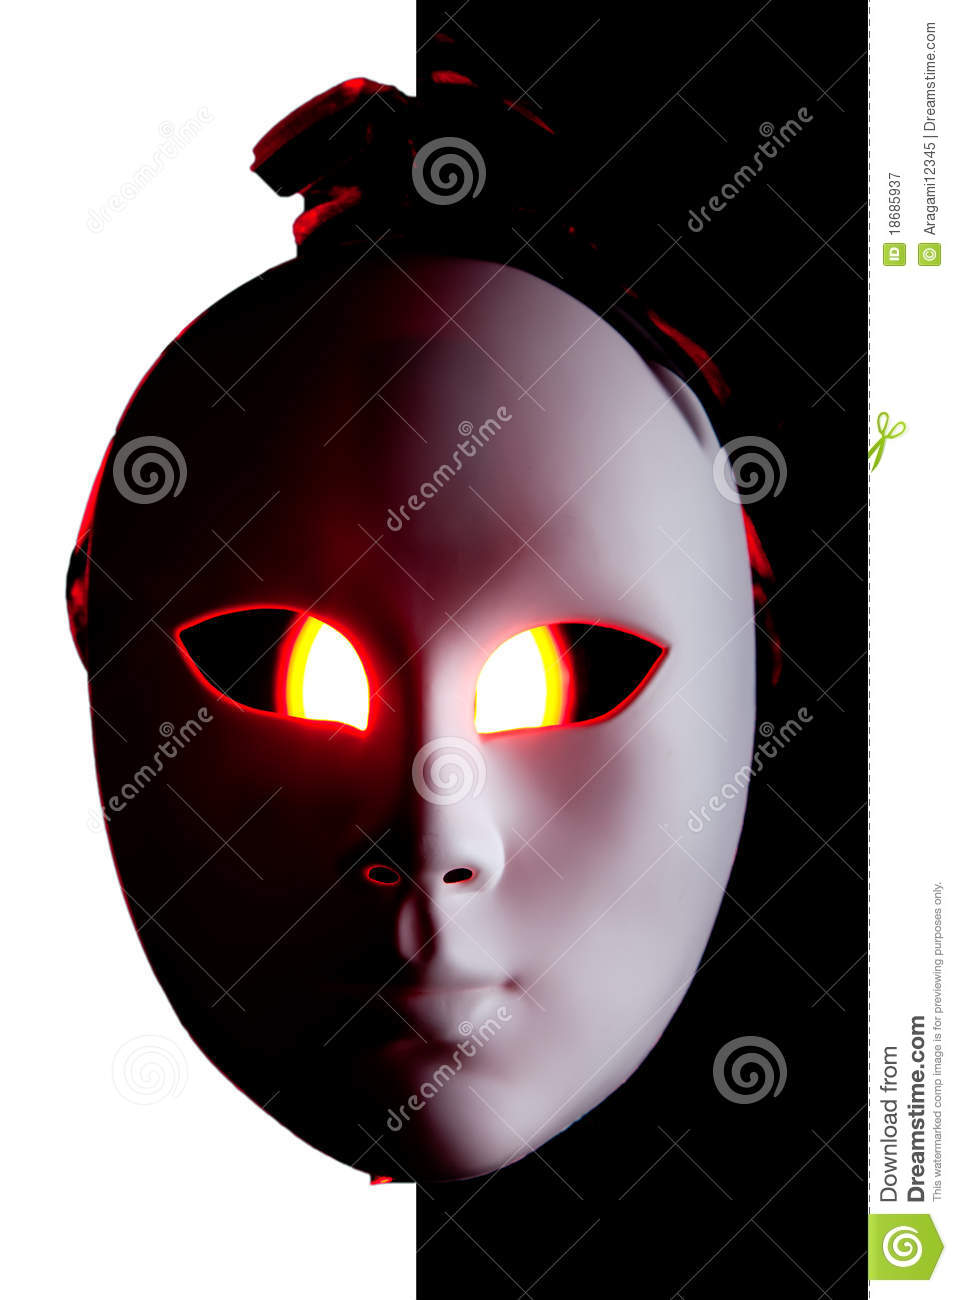 Scary Black And White Mask With Red Eyes Royalty Free Stock.